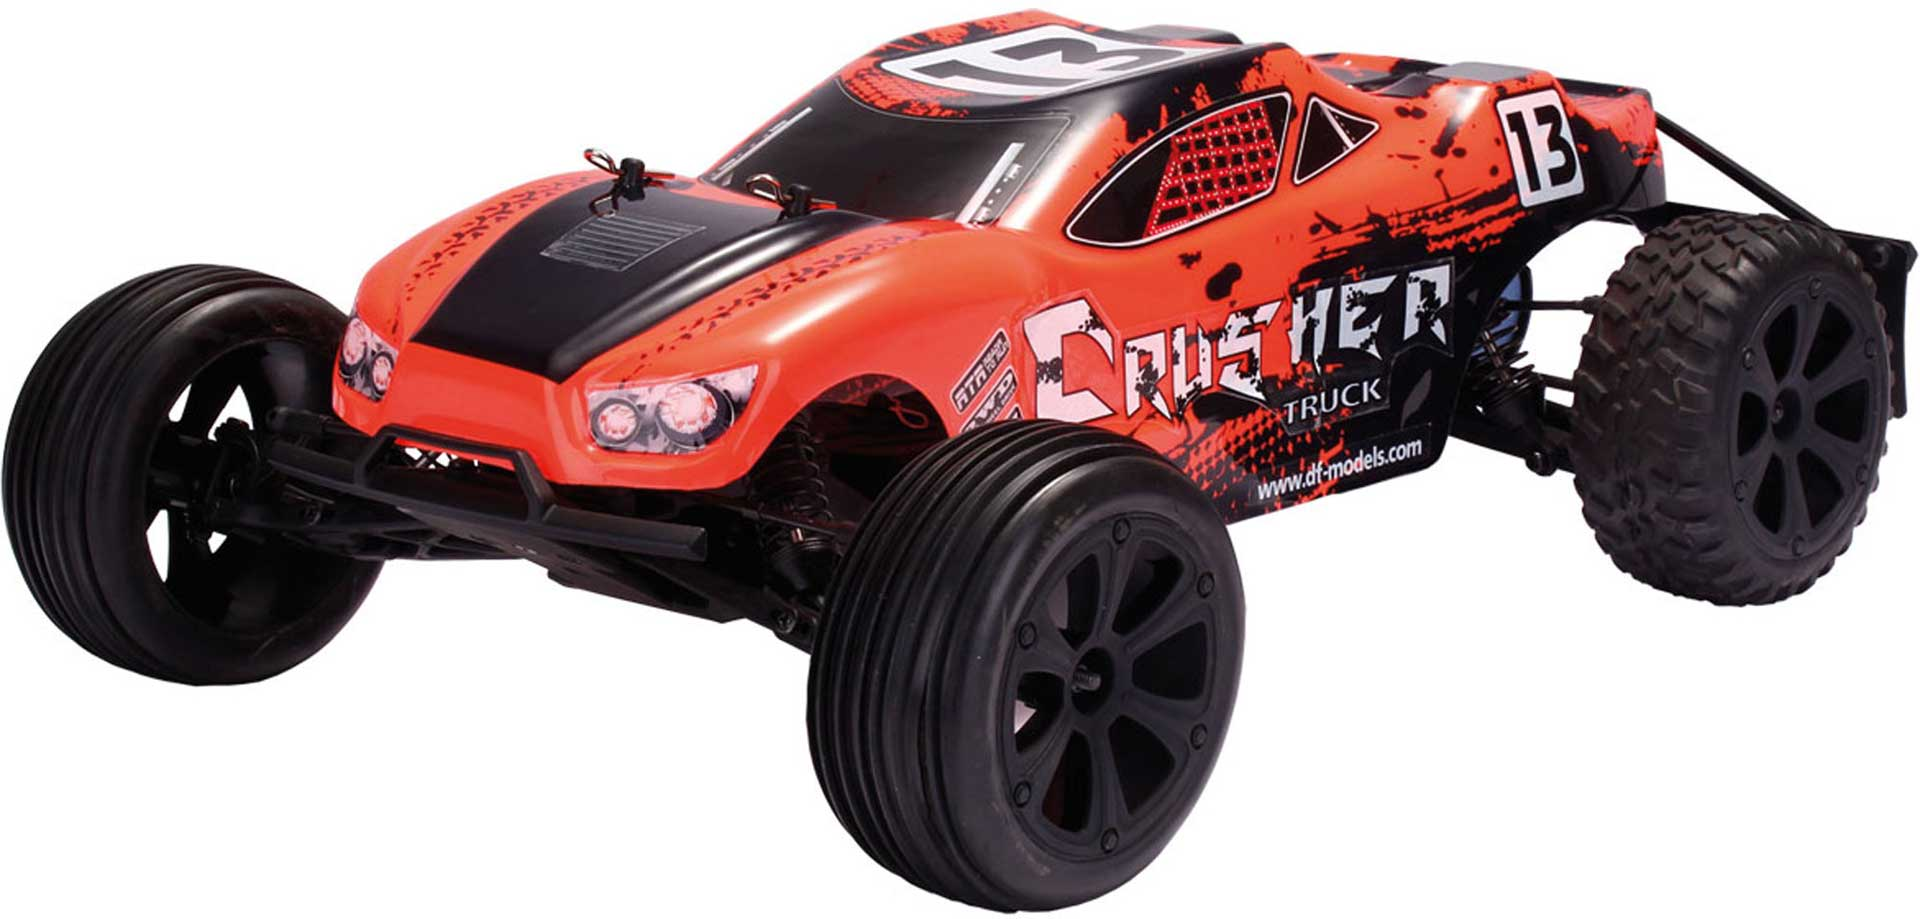 DRIVE & FLY MODELS CRUSHER TRUCK 2WD RTR 1/10